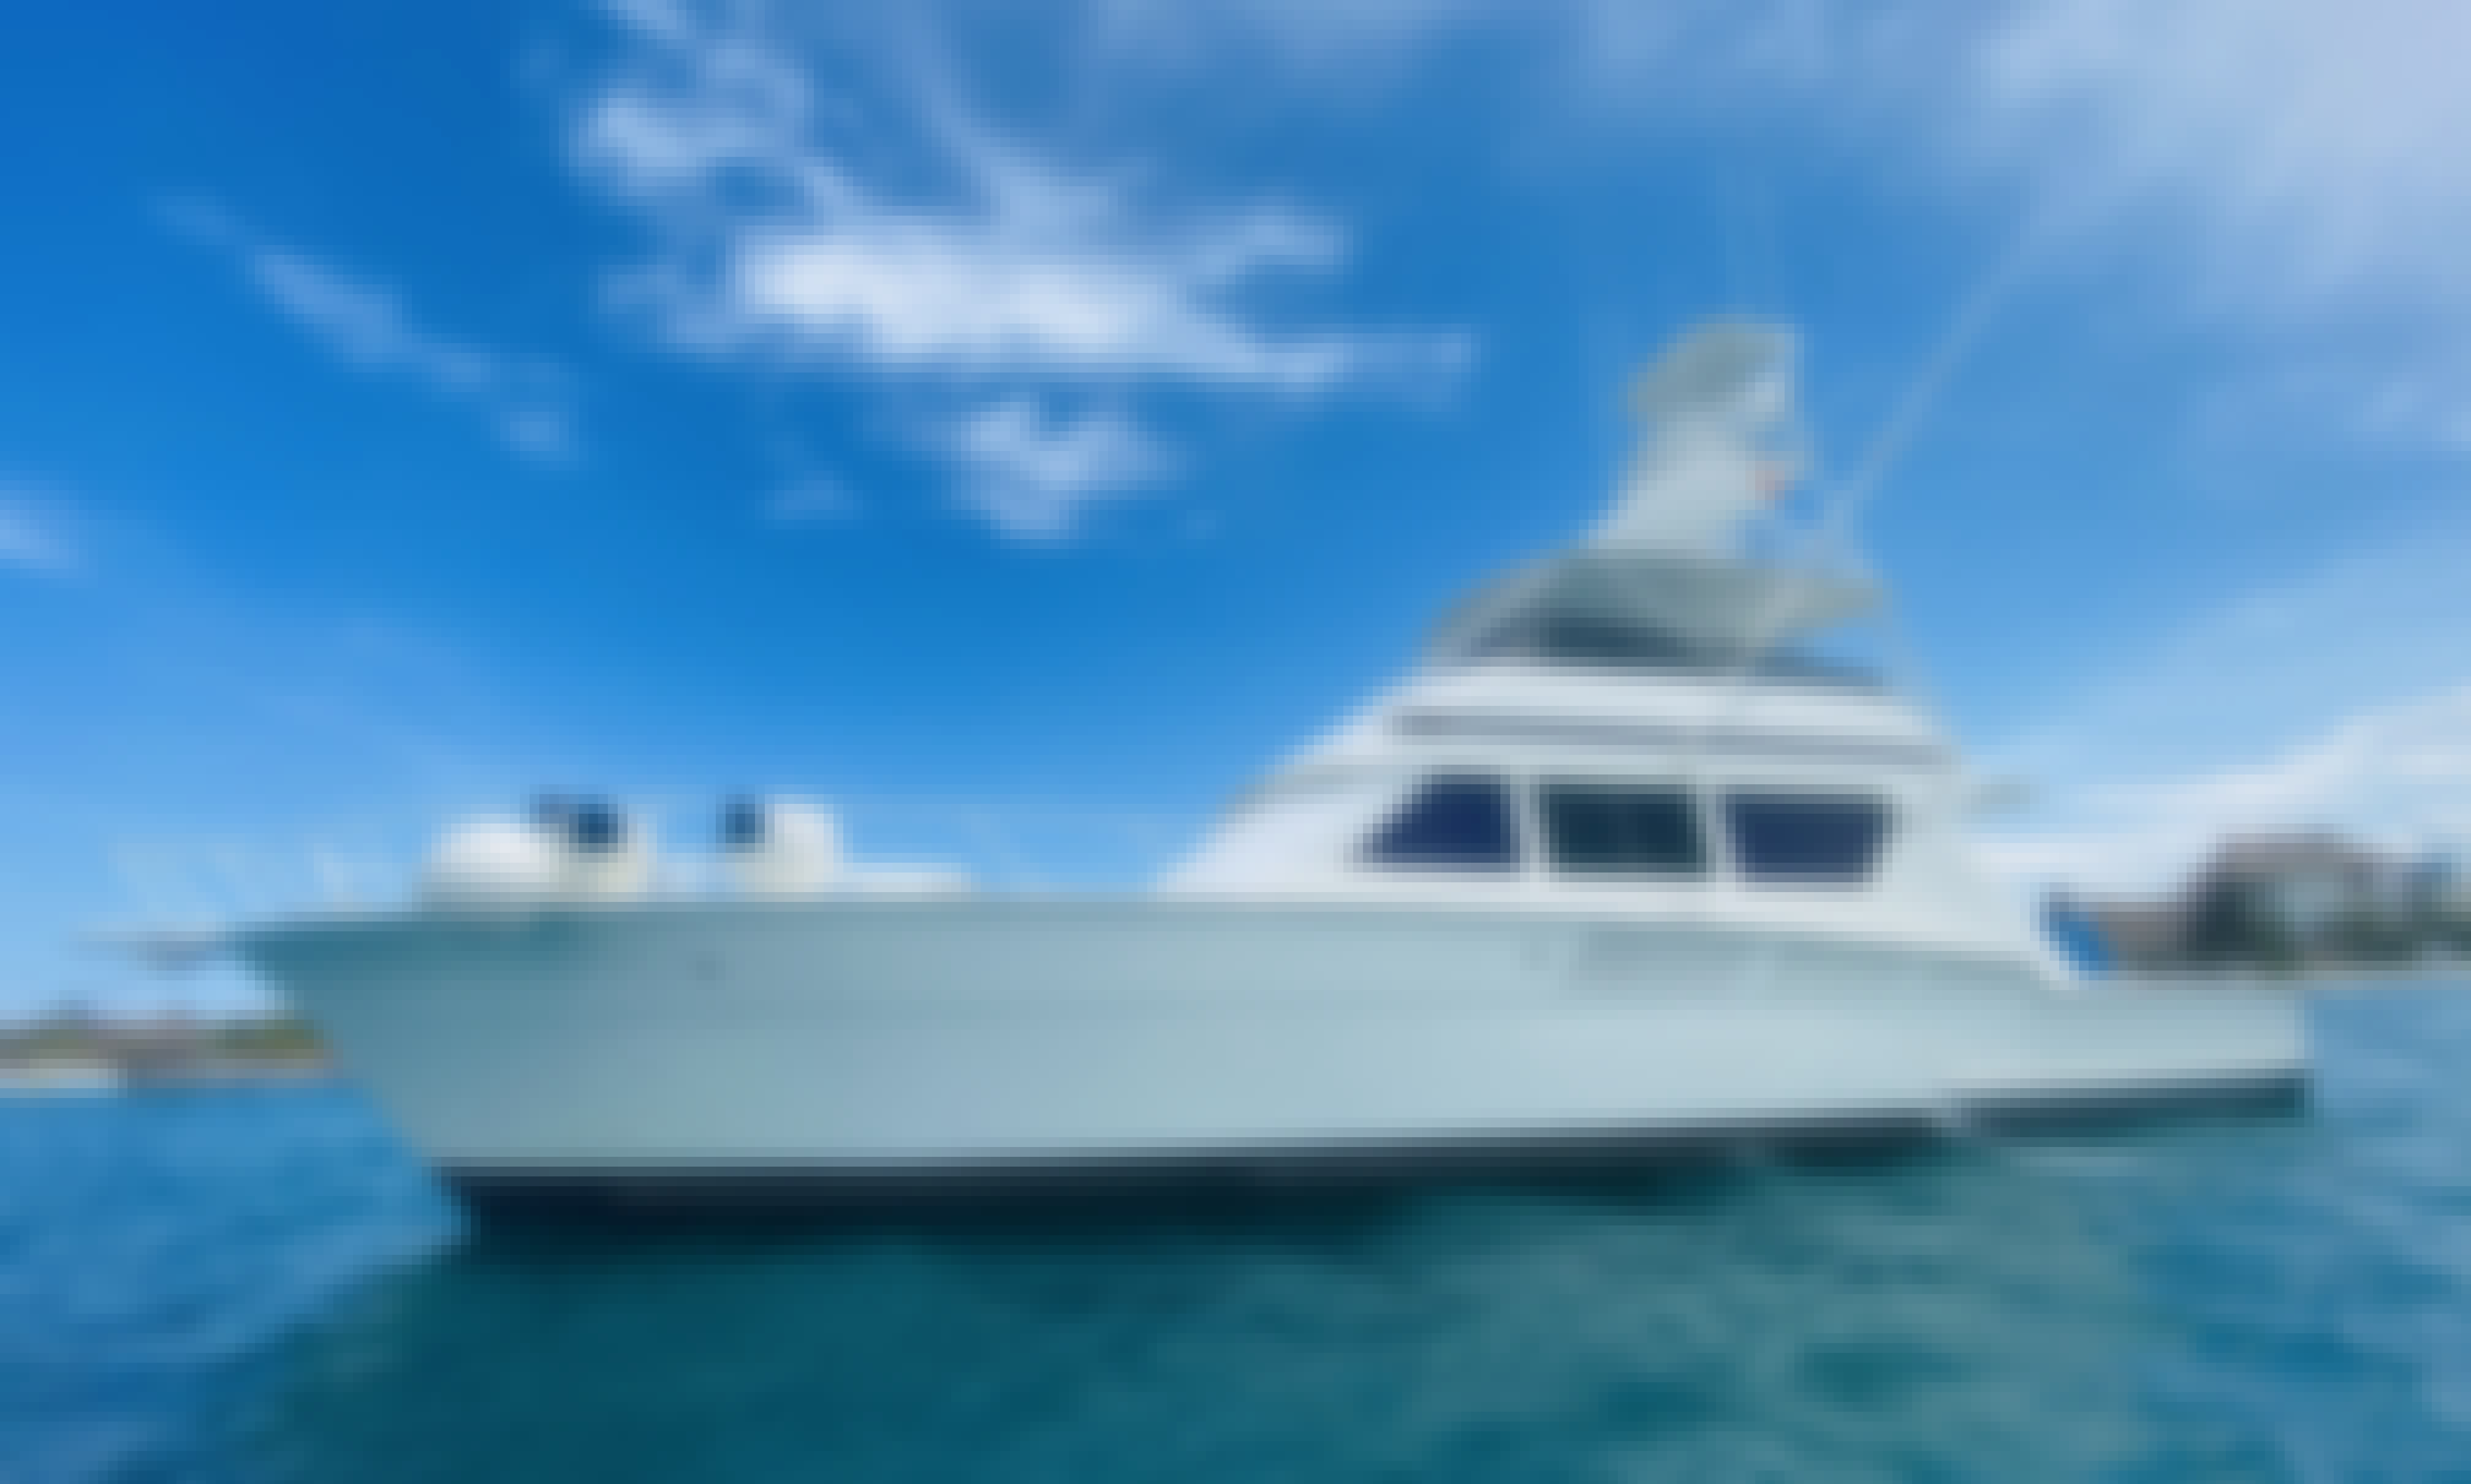 Cancun fishing hatteras 60ft largest yachts/ Round trip transportation included Hotel-Marina-Hotel